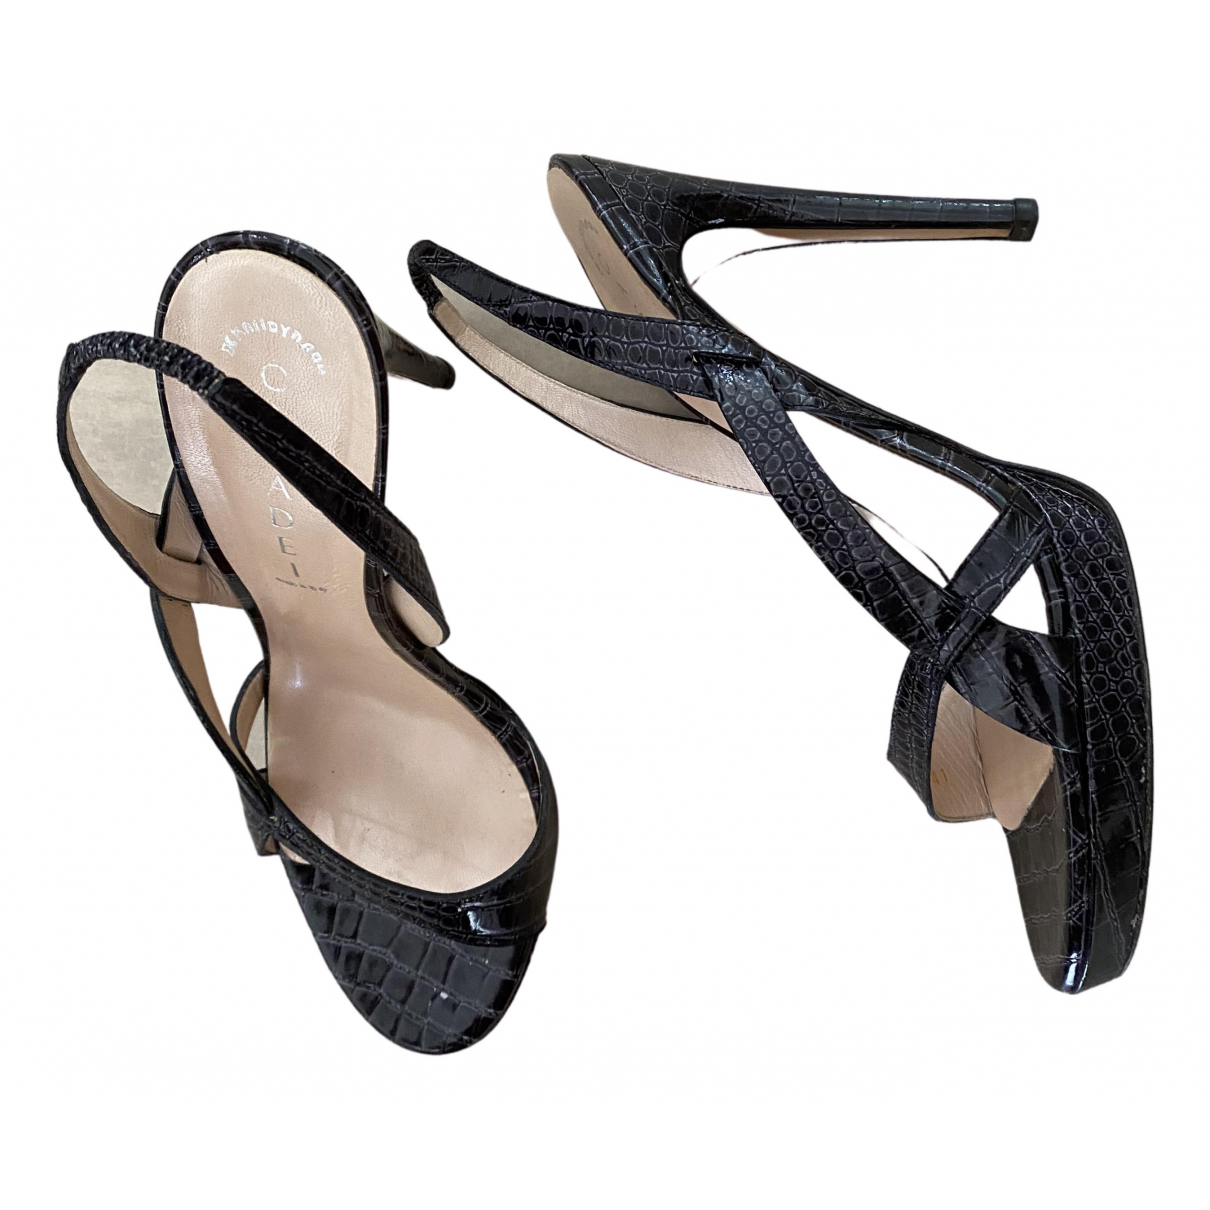 Casadei \N Black Leather Sandals for Women 11 US